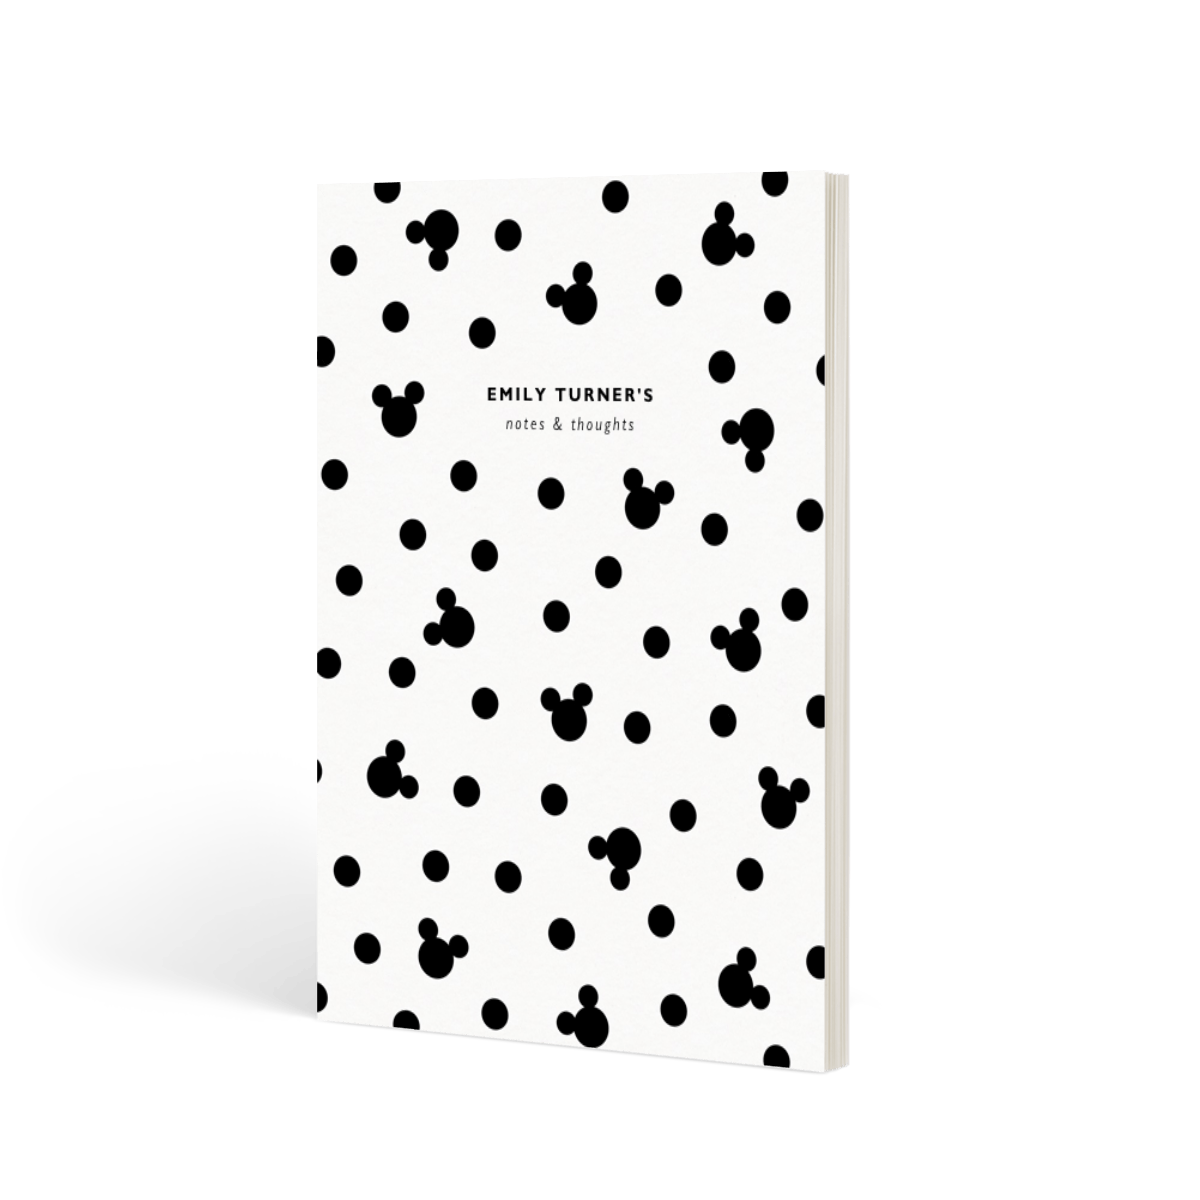 Https%3a%2f%2fwww.papier.com%2fproduct image%2f57326%2f6%2fpolka dot mickey mouse 13771 front 1575301296.png?ixlib=rb 1.1